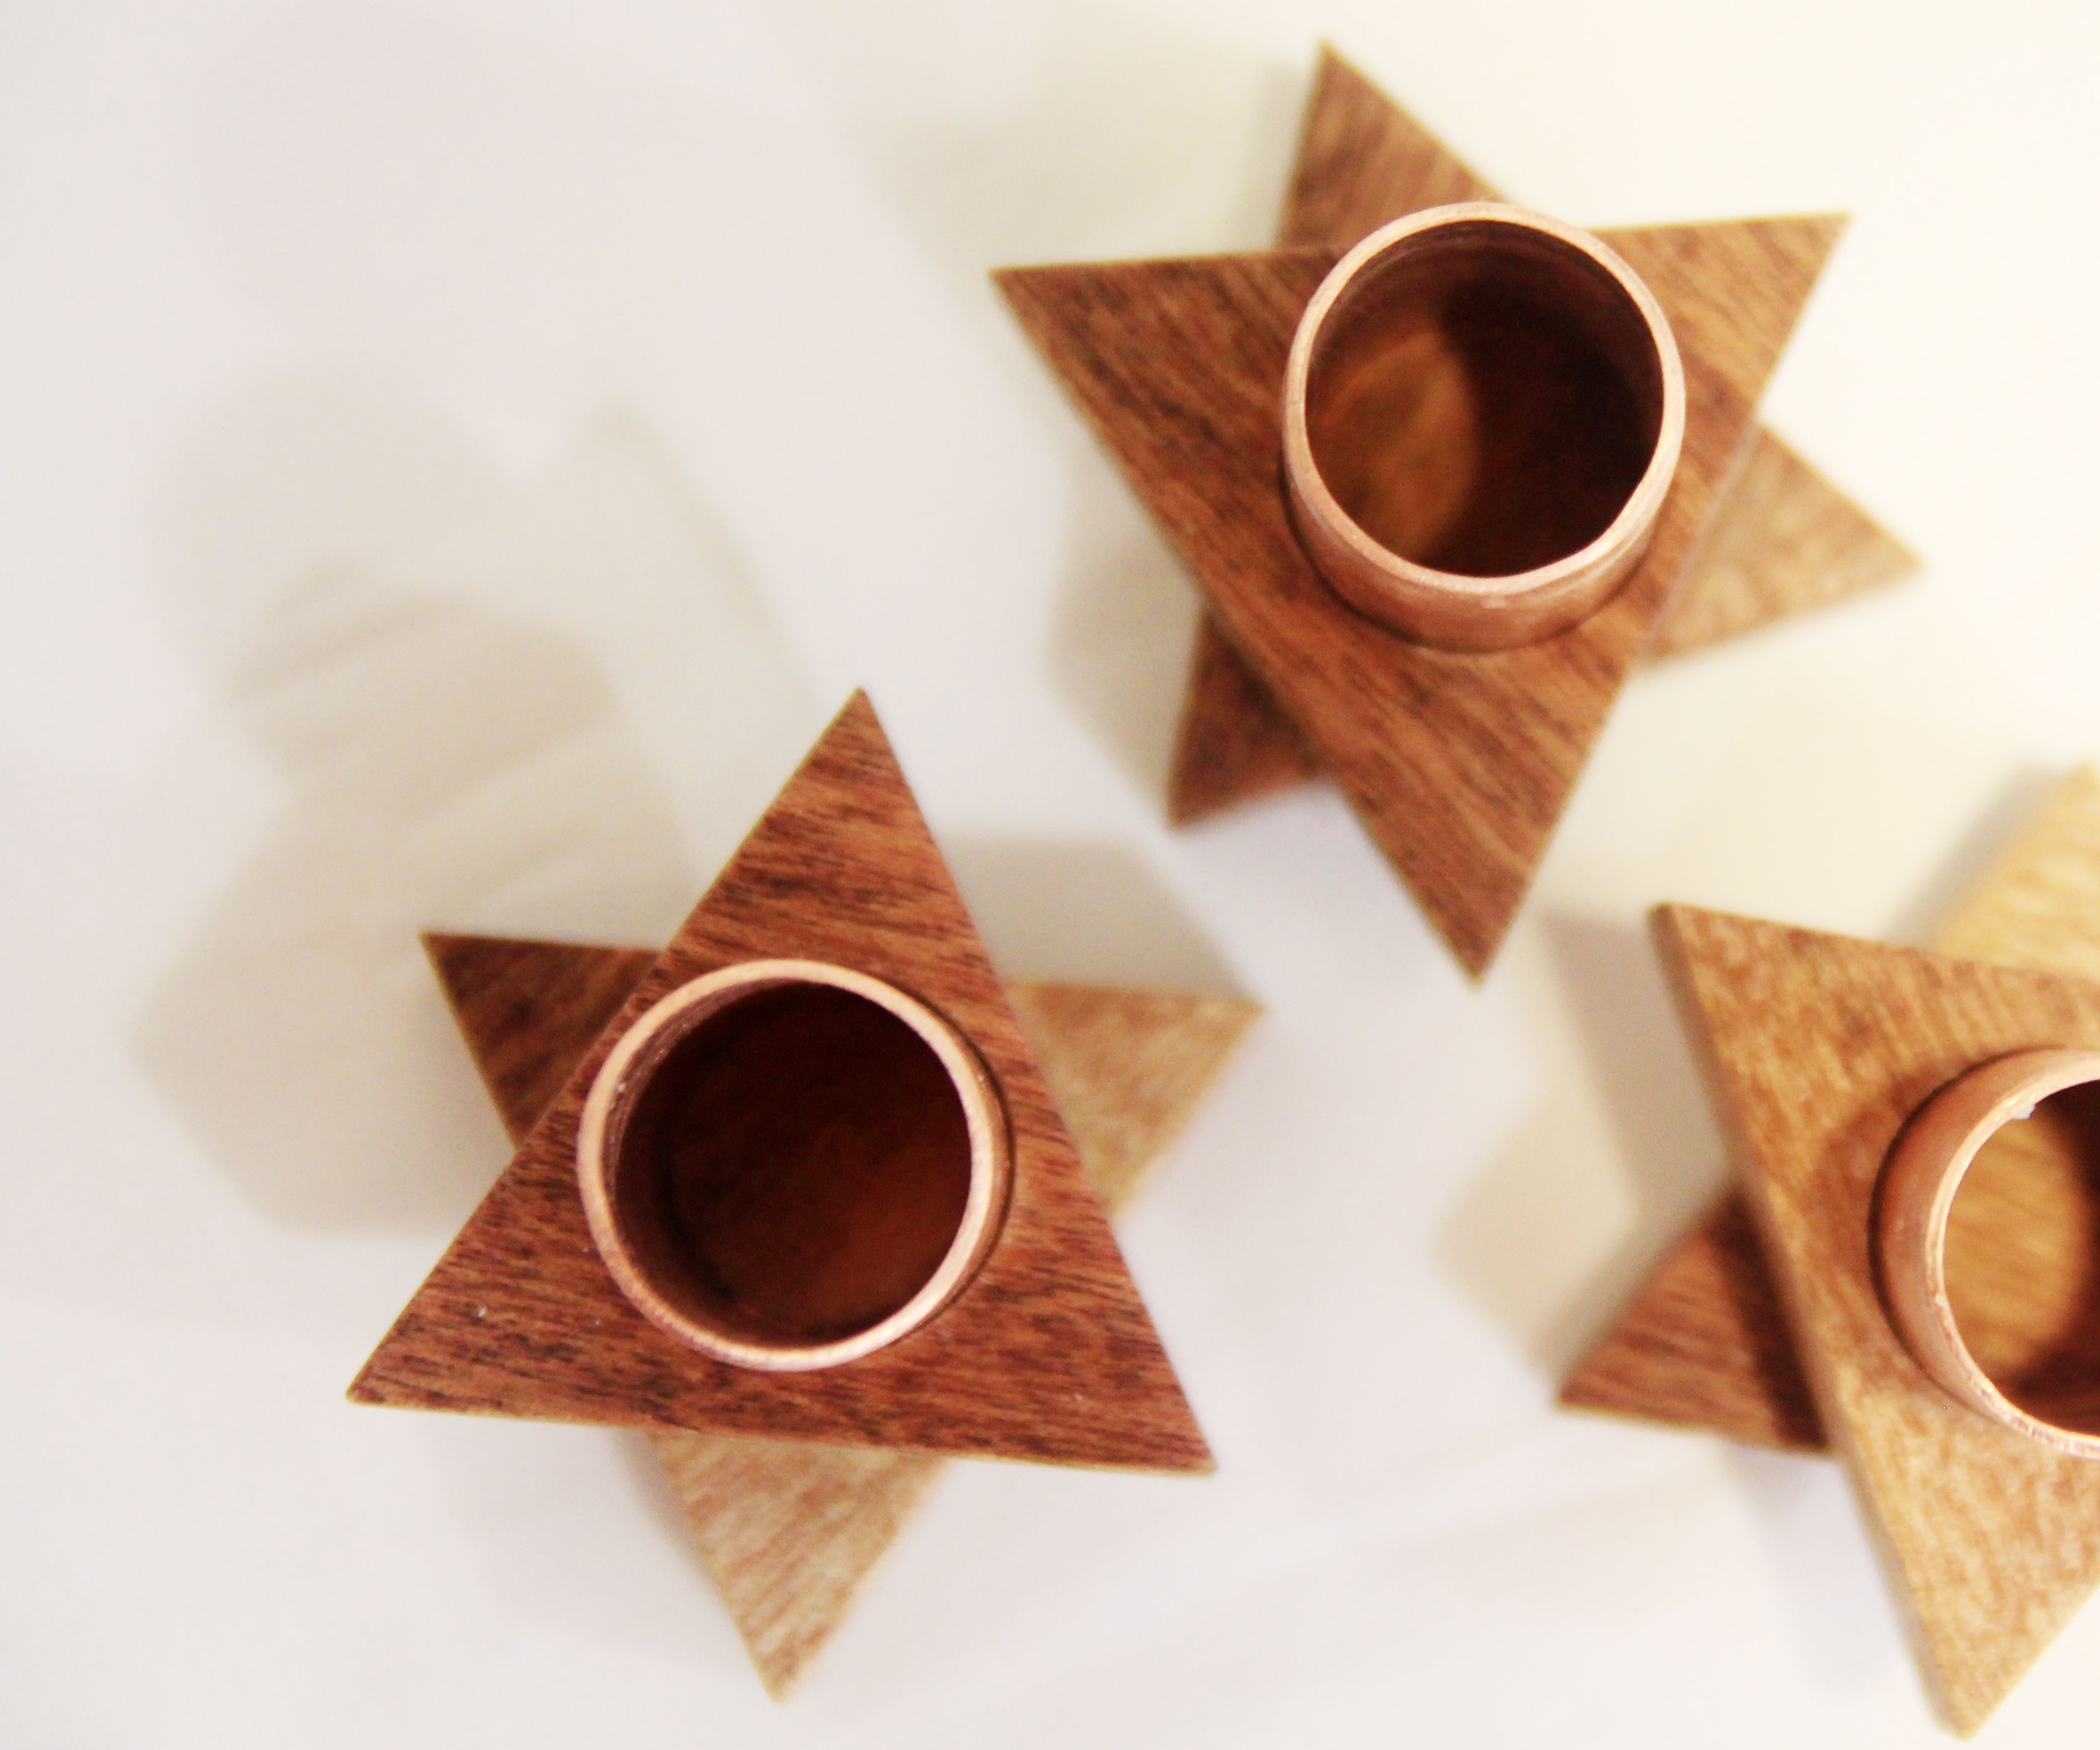 DIY Candle Holder with Wood & Copper Piping